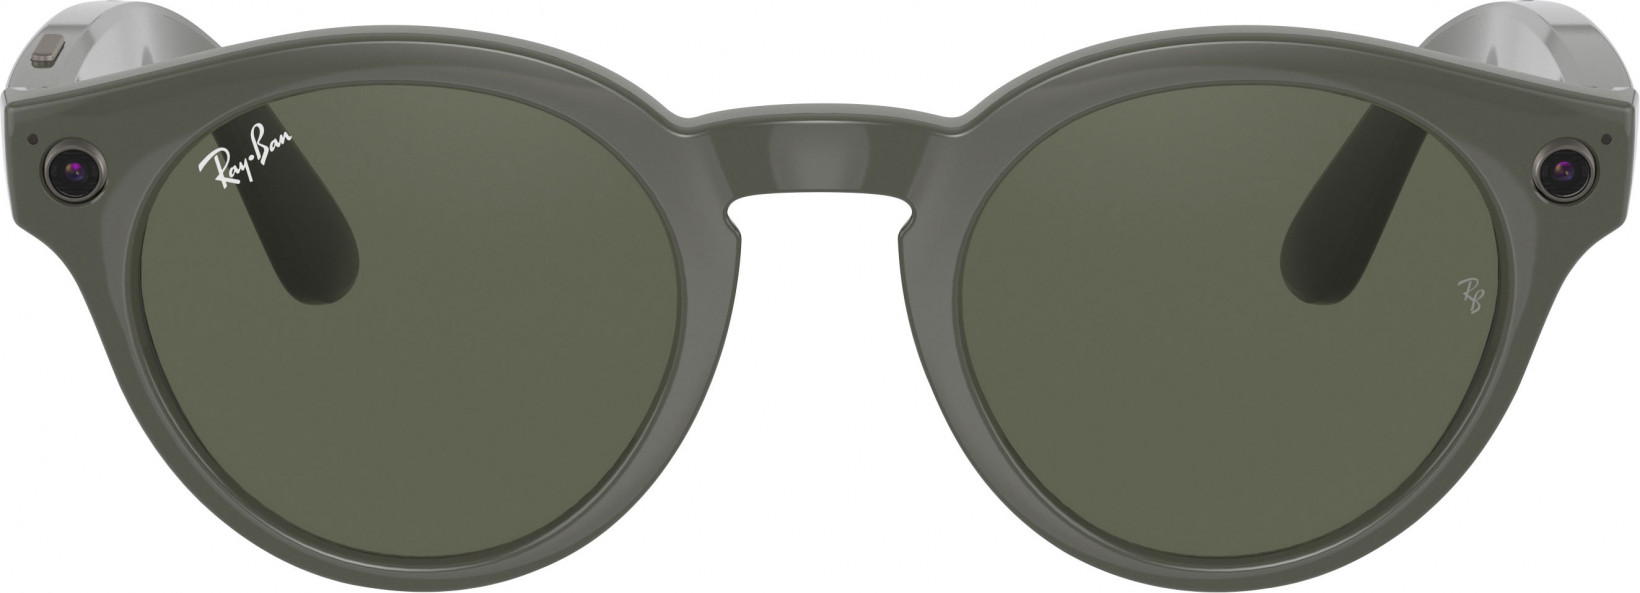 facebook and ray-ban smart glasses